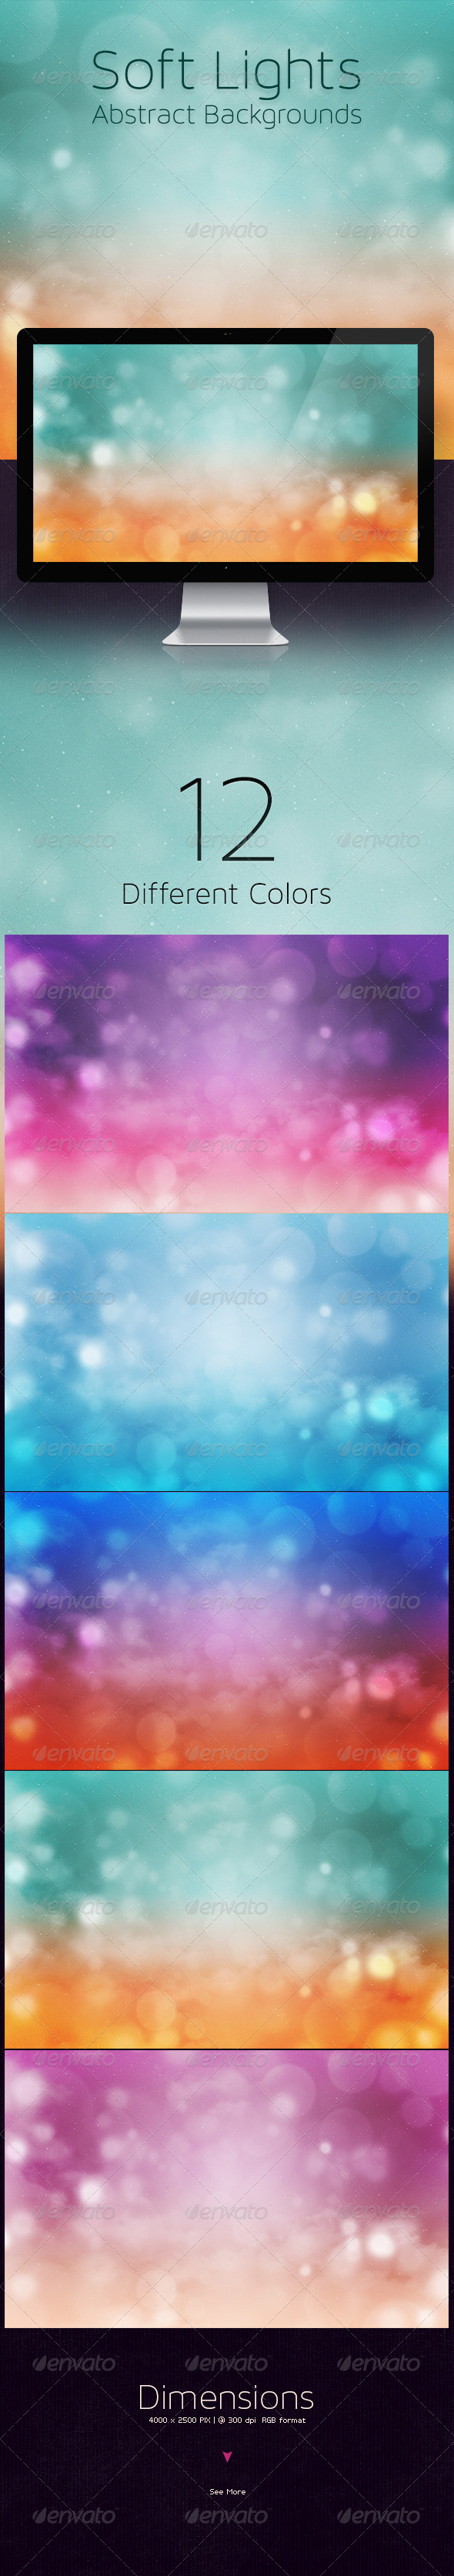 Soft Lights Abstract Backgrounds  - Abstract Backgrounds